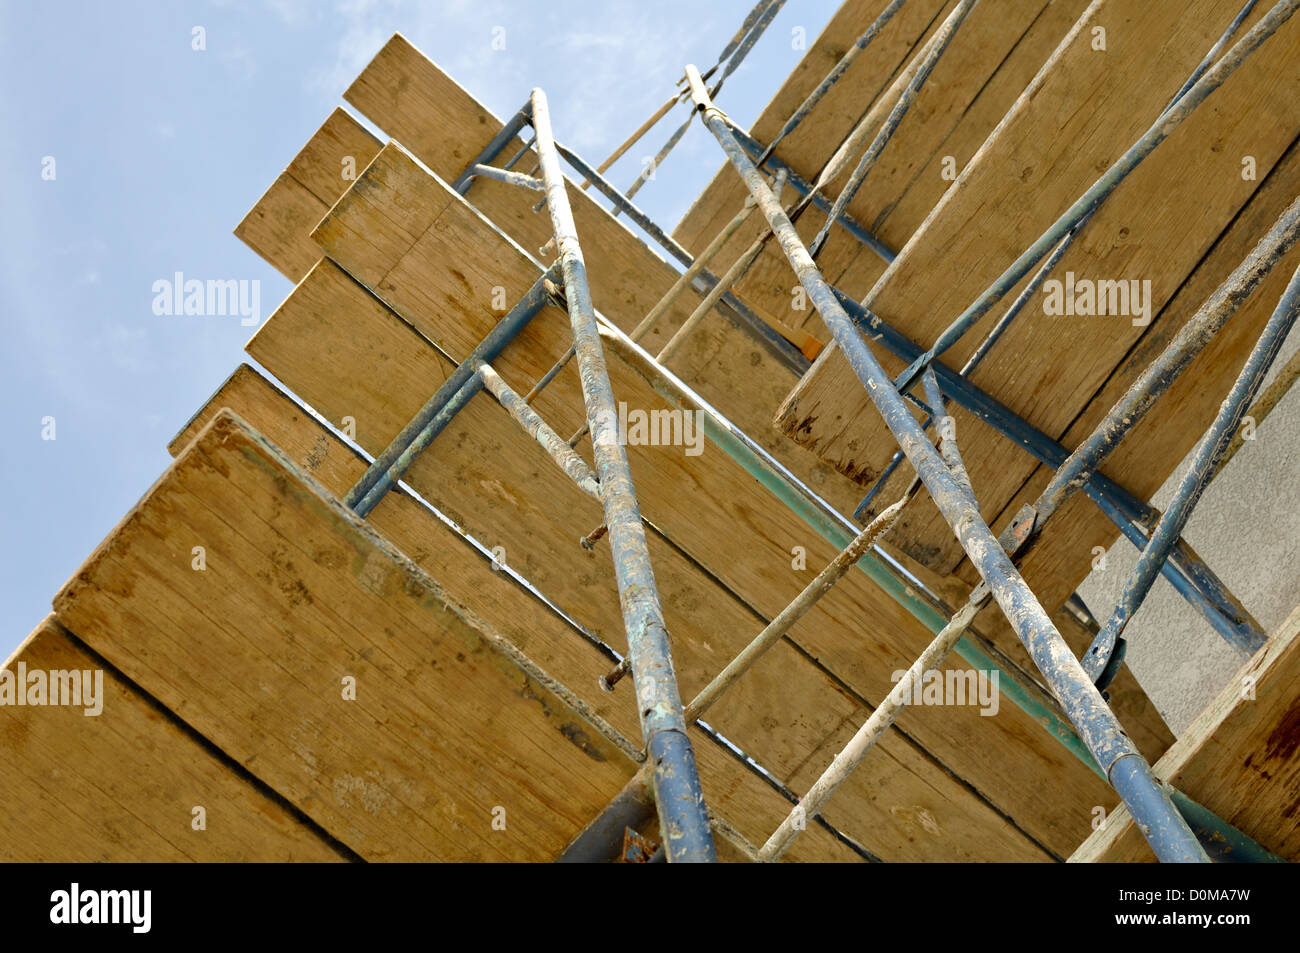 New Home Construction Scaffolding Close Up - Stock Image